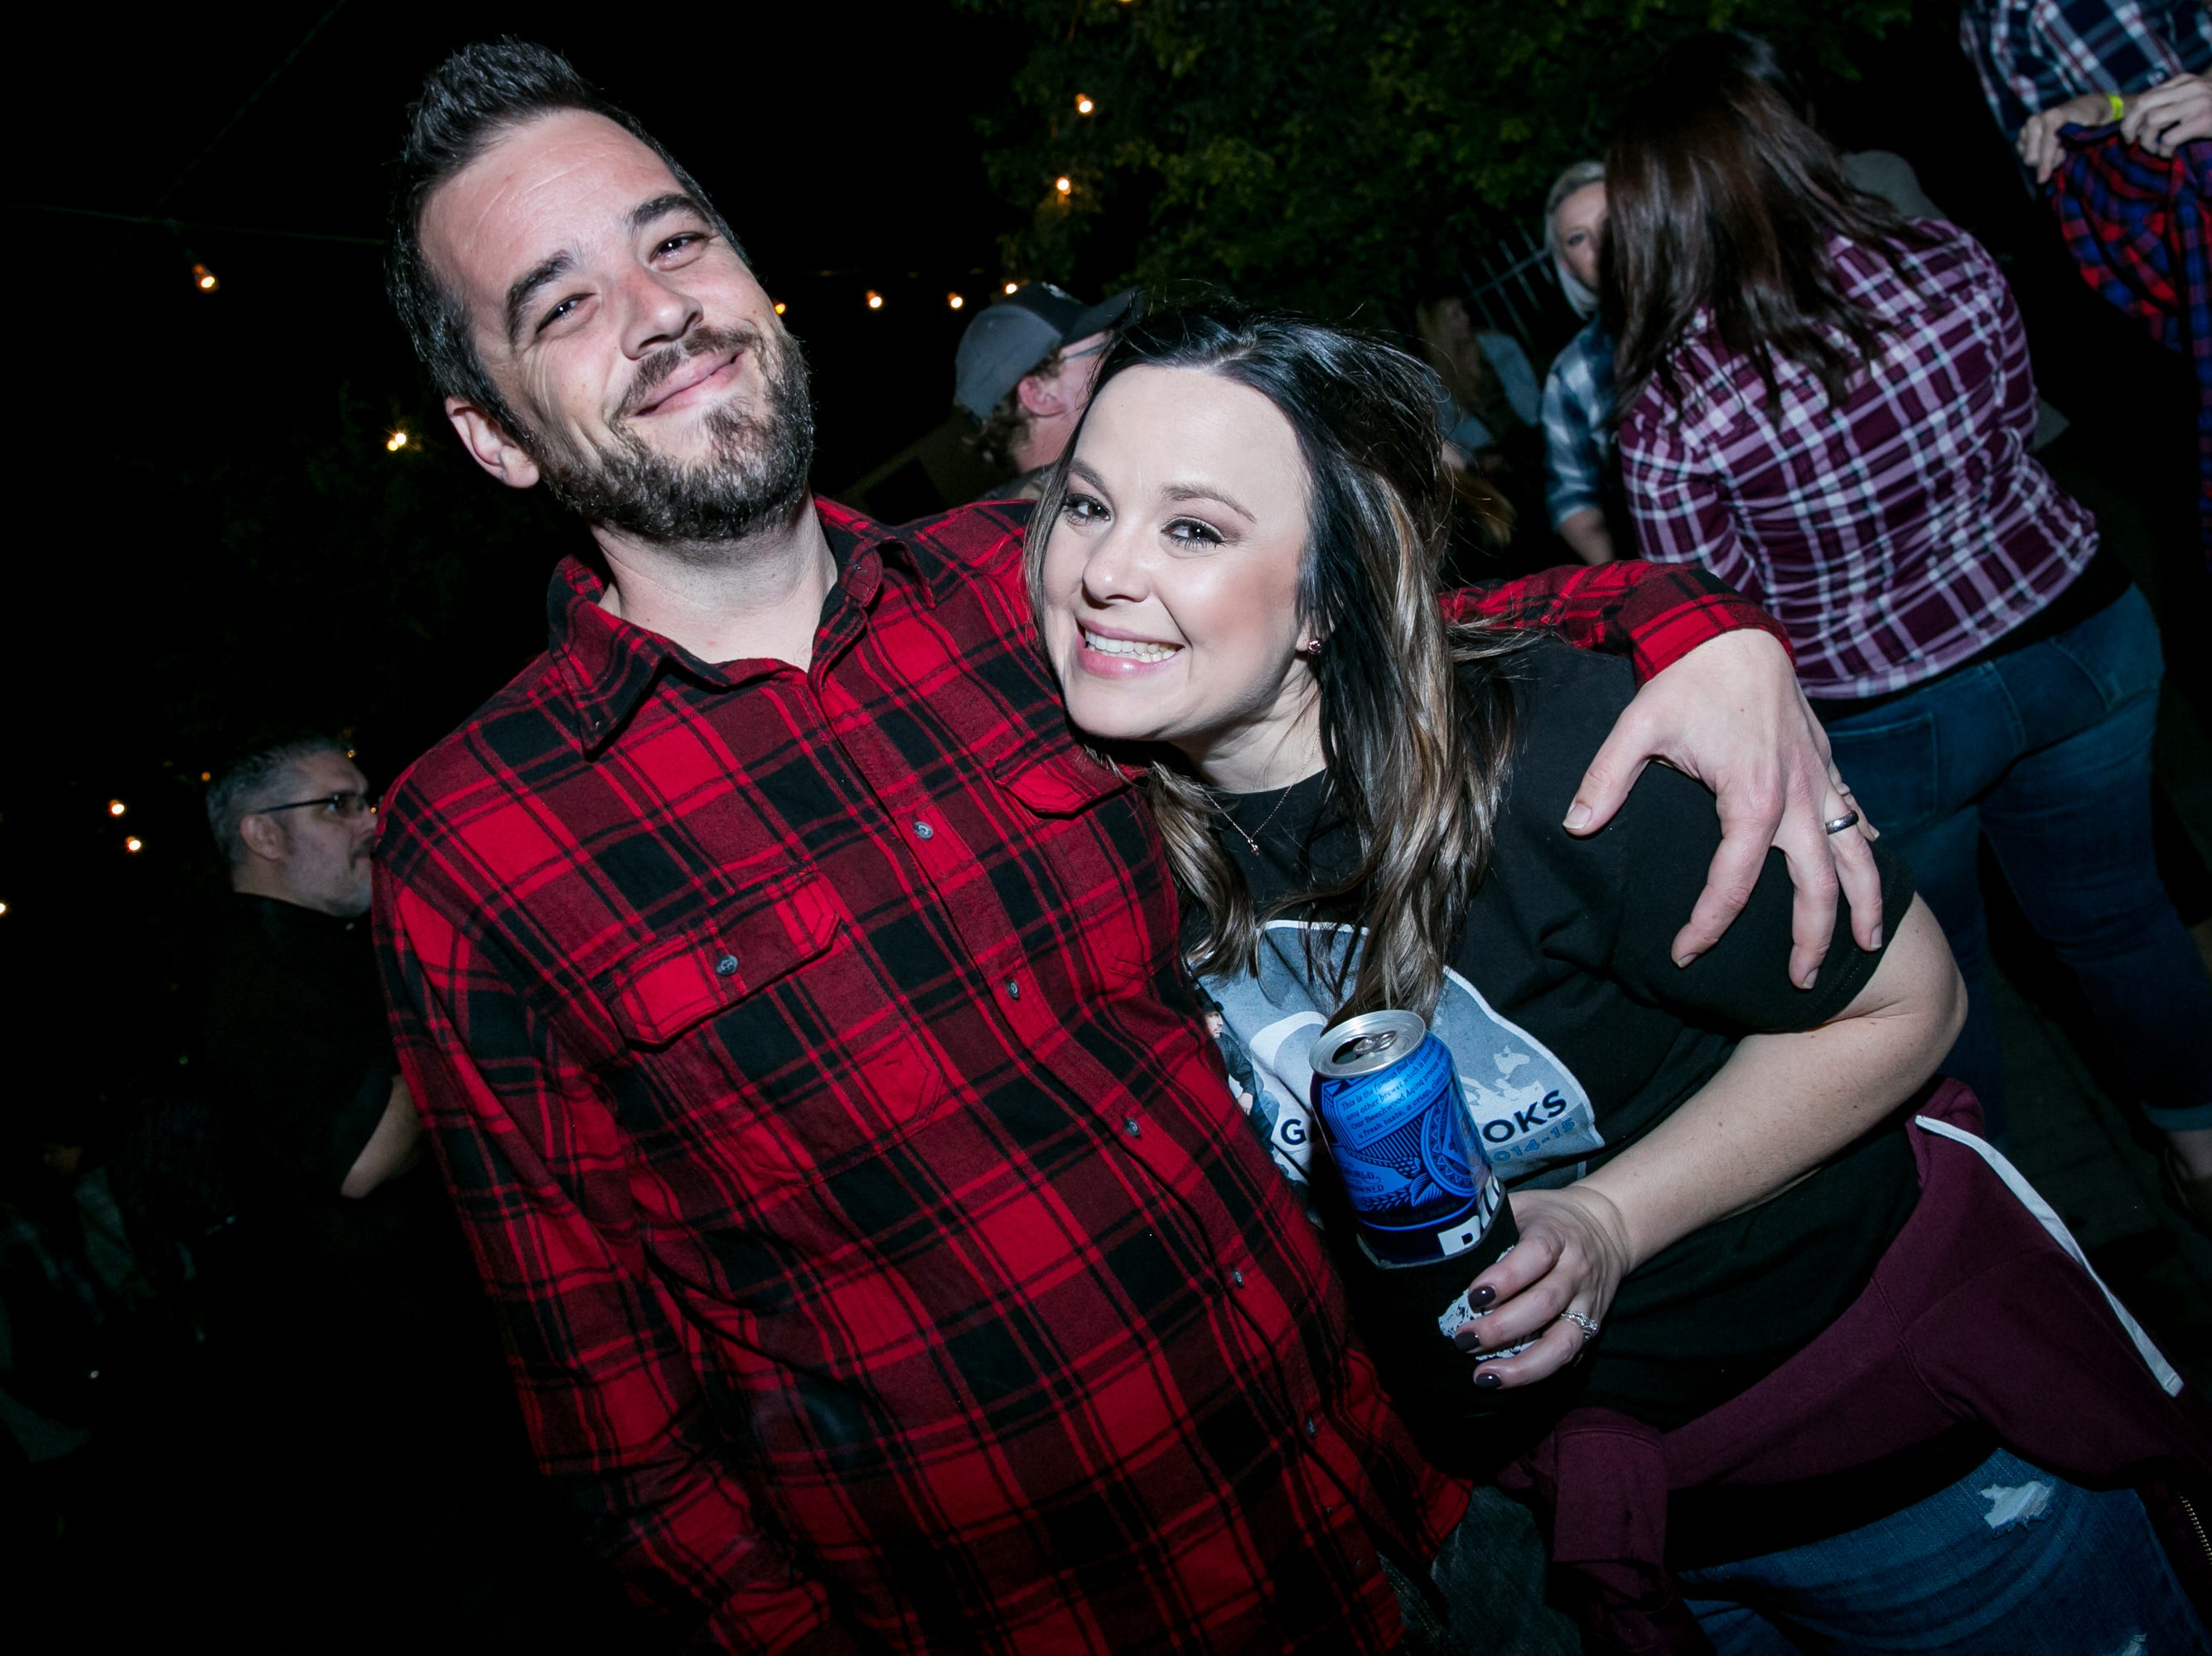 They danced to Garth Brooks during the KMLE Country 90's Throwback at The Van Buren on Friday, Jan. 11, 2019.